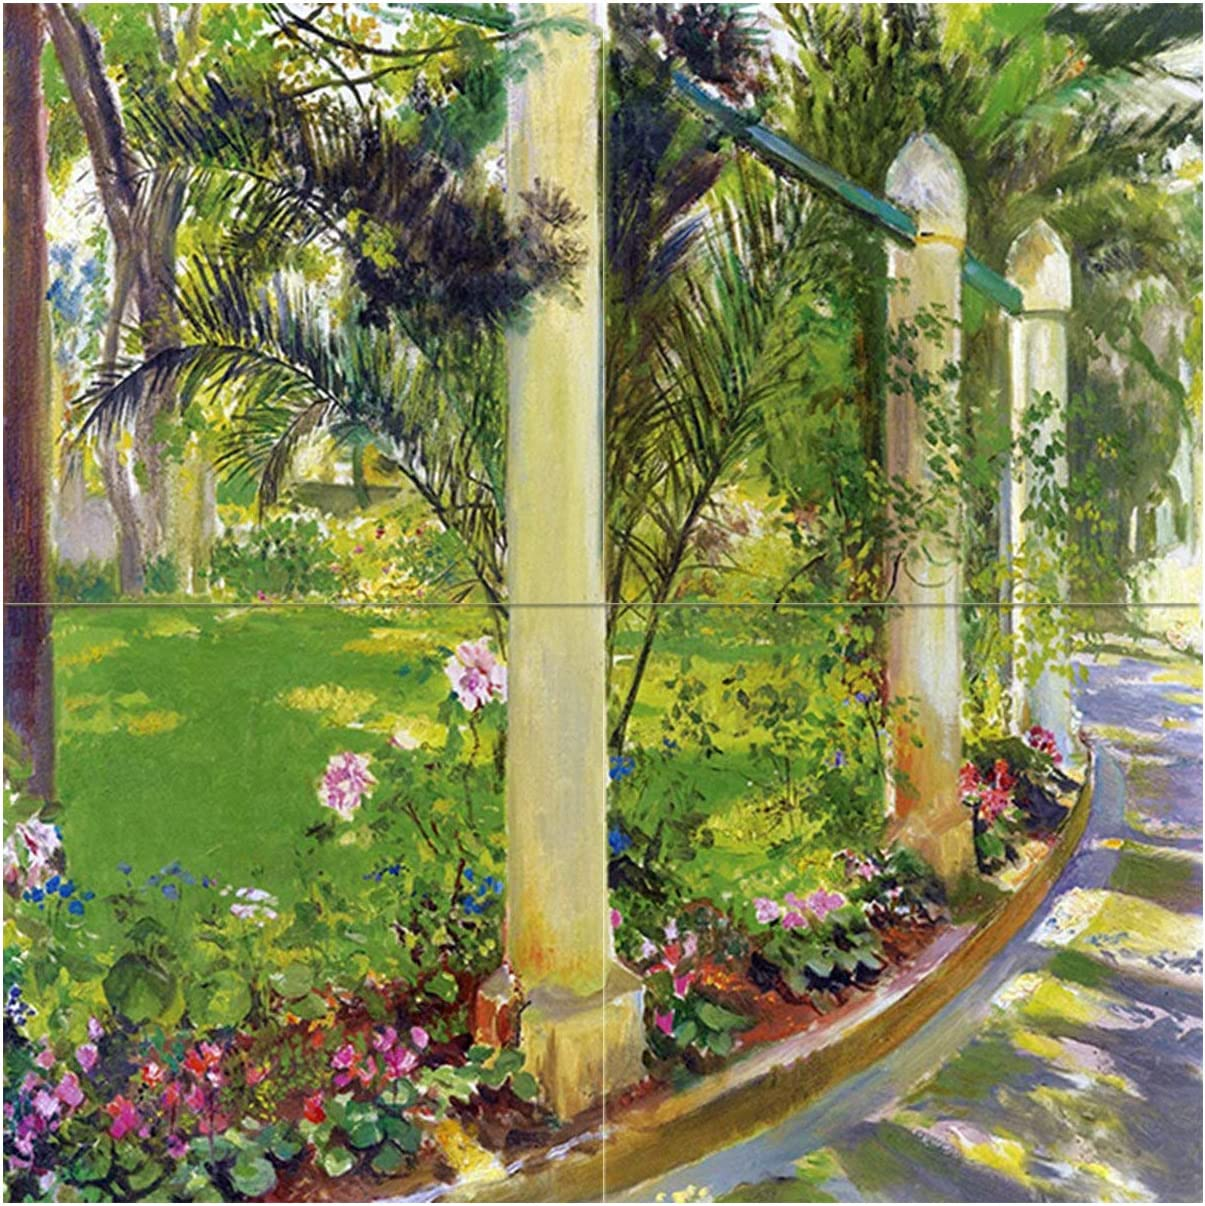 Tile 70% OFF Outlet Mural The Path of by Rochegrosse Palm Max 48% OFF Noria Georges-Antoine